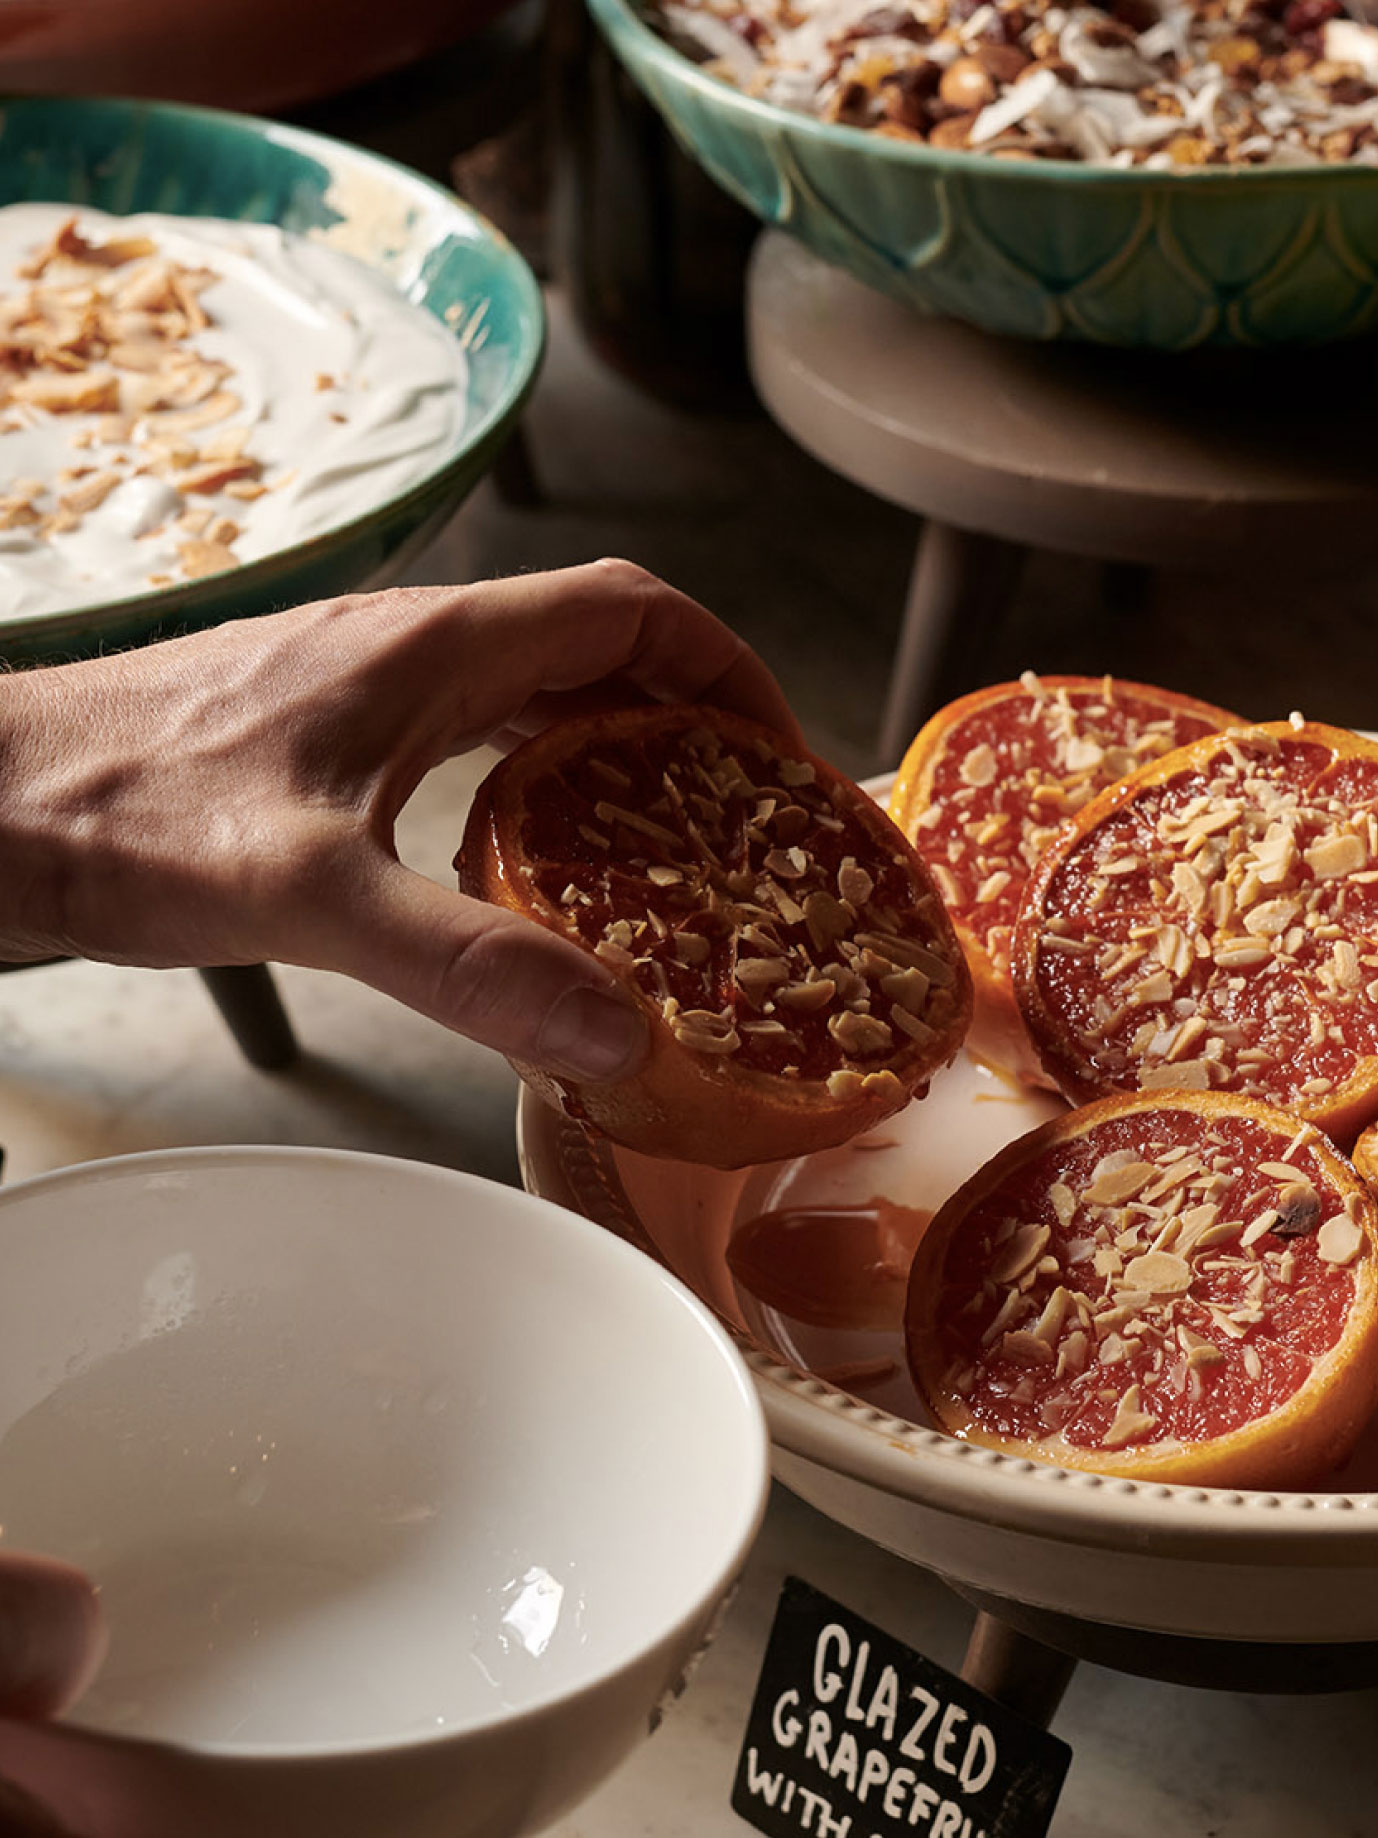 A hand lifts half an orange sprinkled with nuts from a breakfast buffet.